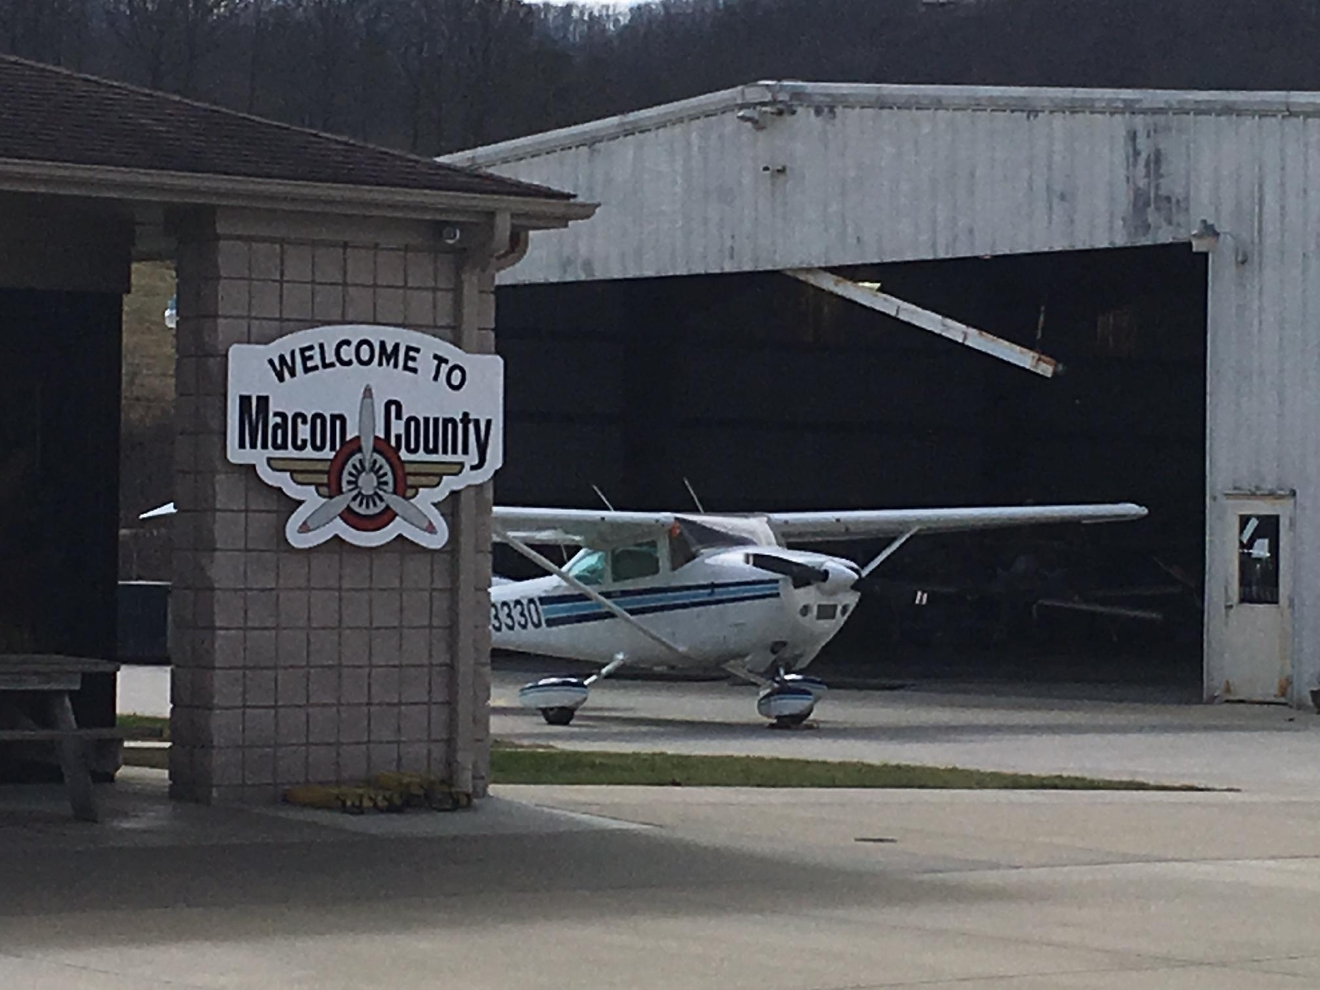 The North Carolina Department of Transportation is approving a $4.5 million project to add 1,000 feet to the runway at Macon County Airport. (Photo credit: WLOS staff)